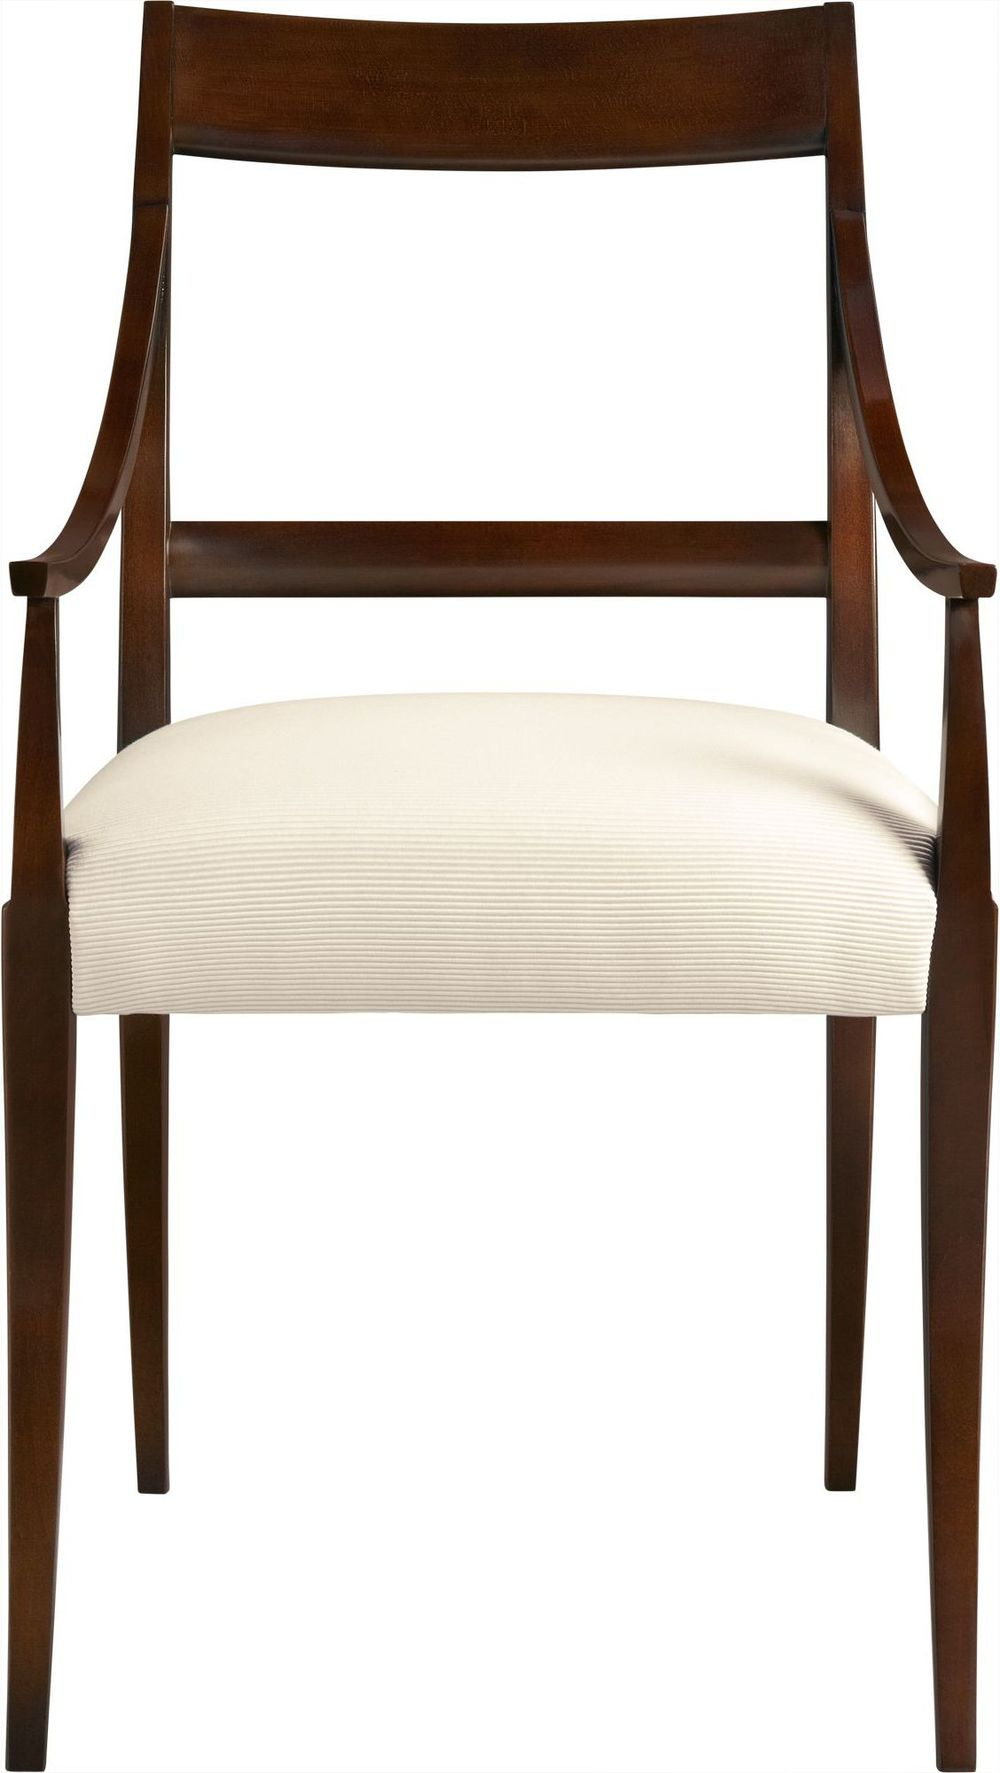 Baker Furniture - Maharadja Chair